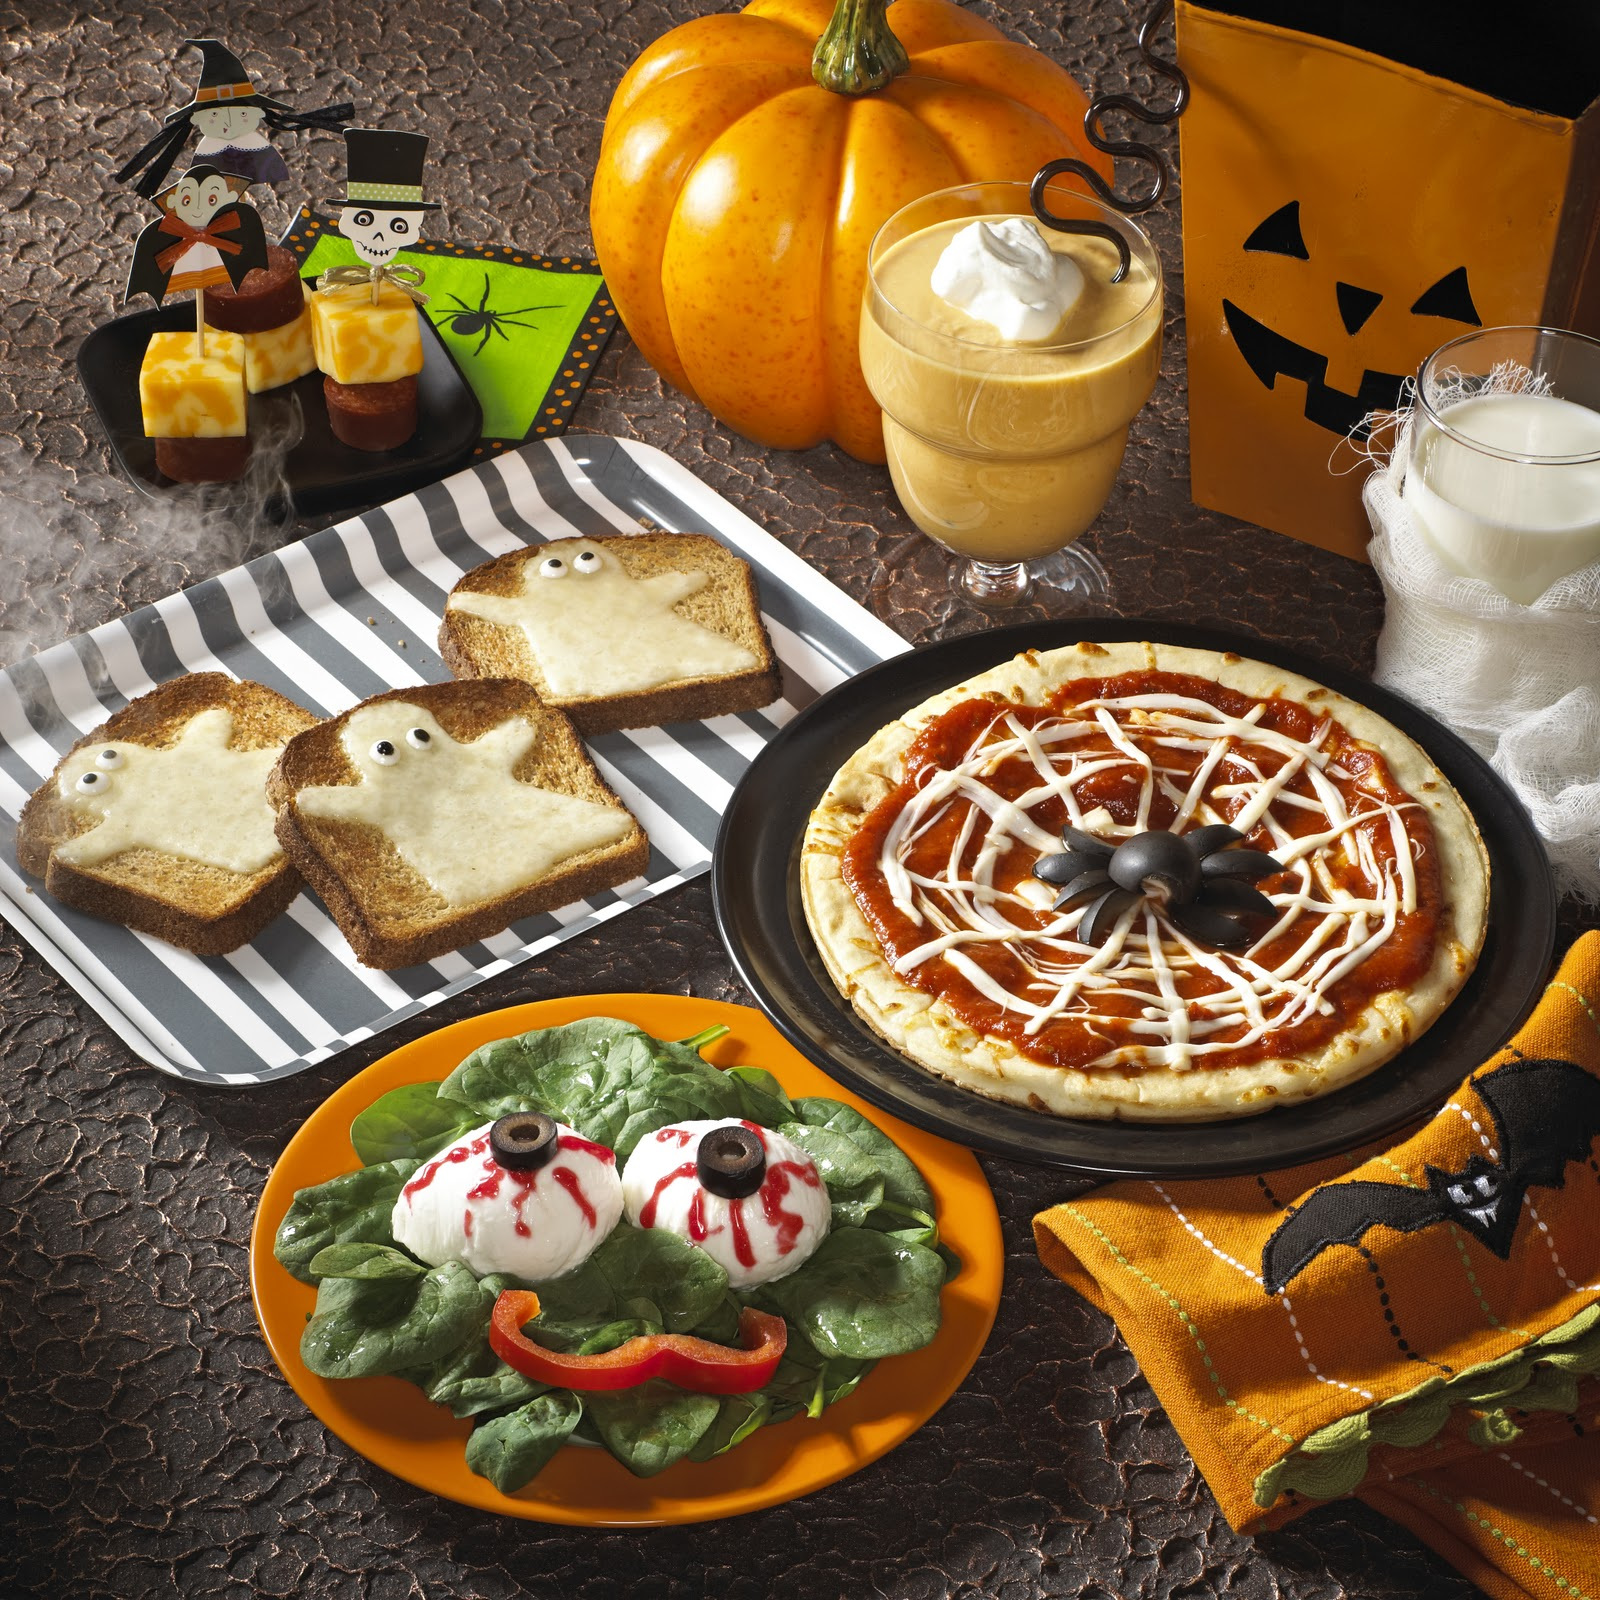 7 healthy and simple halloween recipes - Halloween Healthy Food